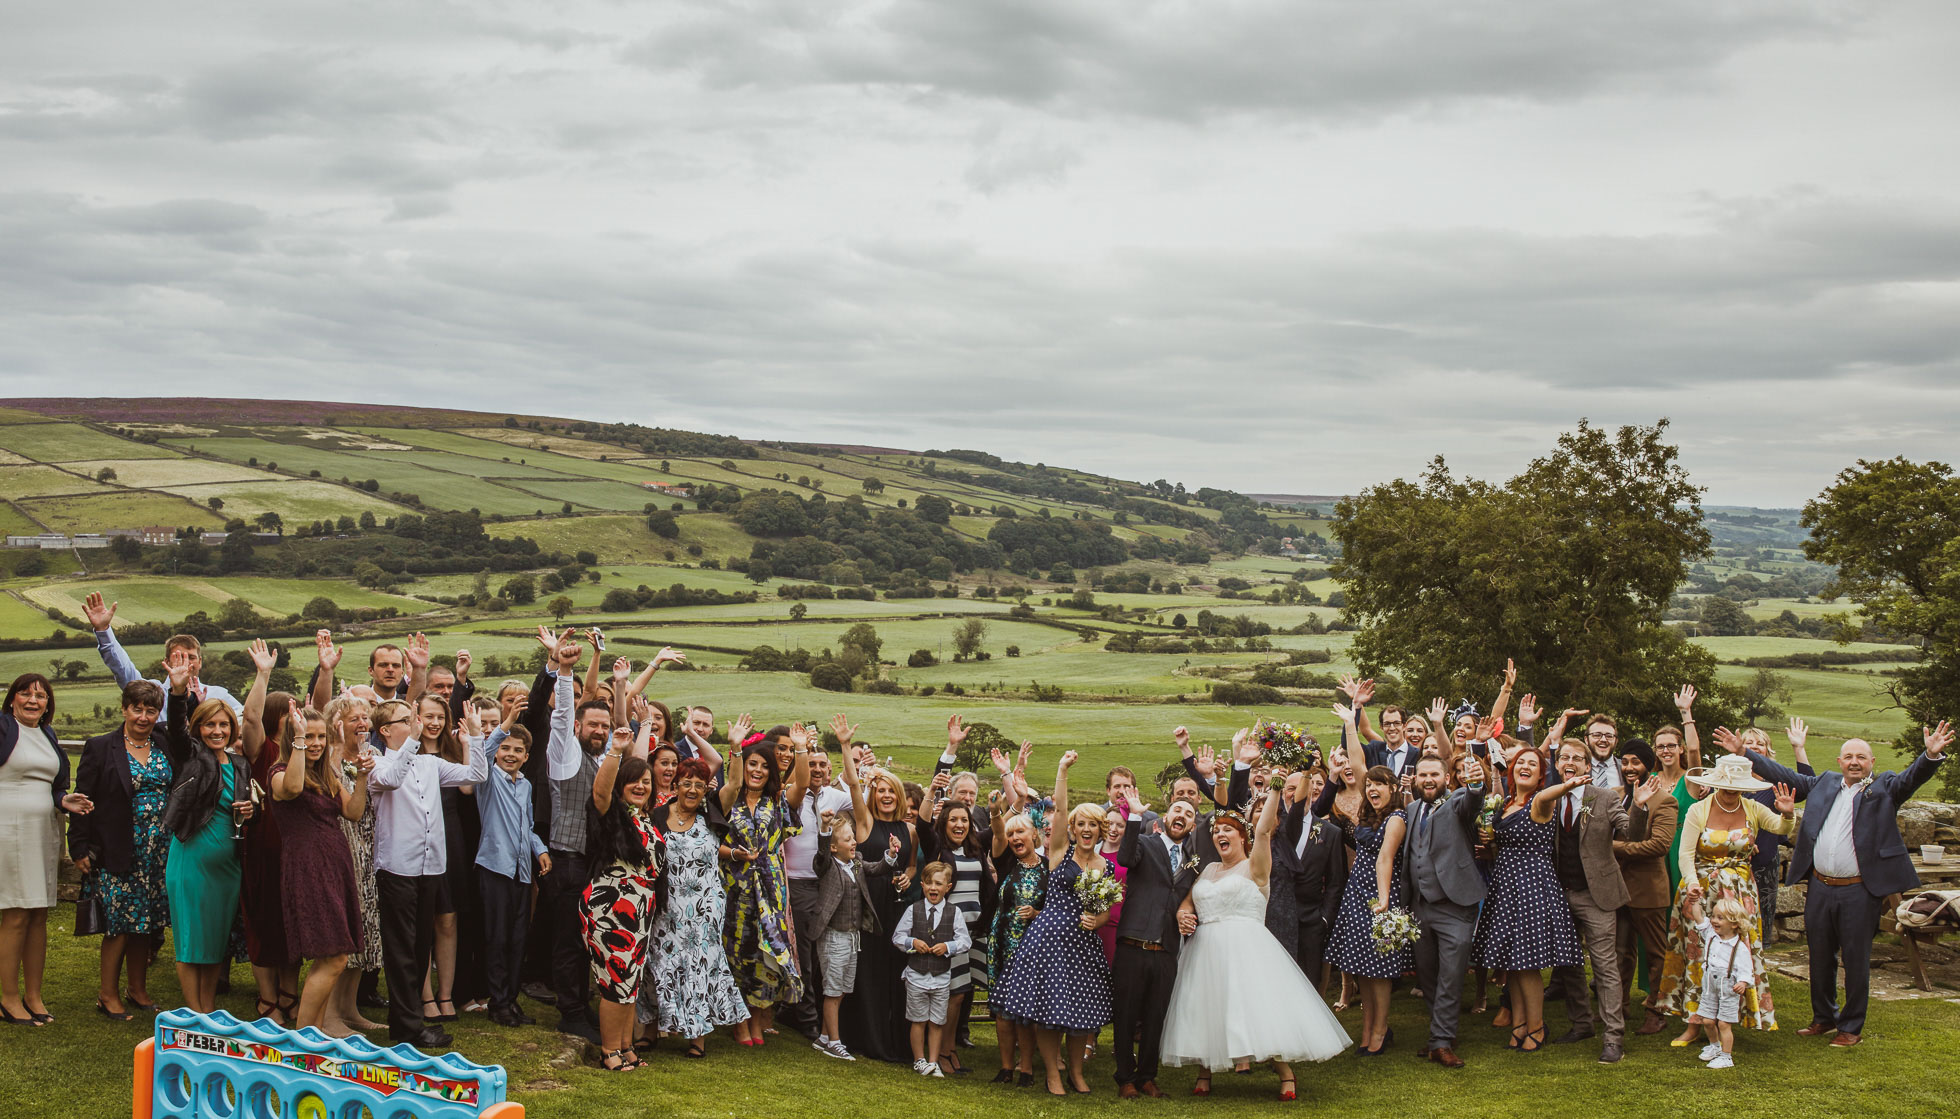 danby_castle_wedding_photographer-66.jpg